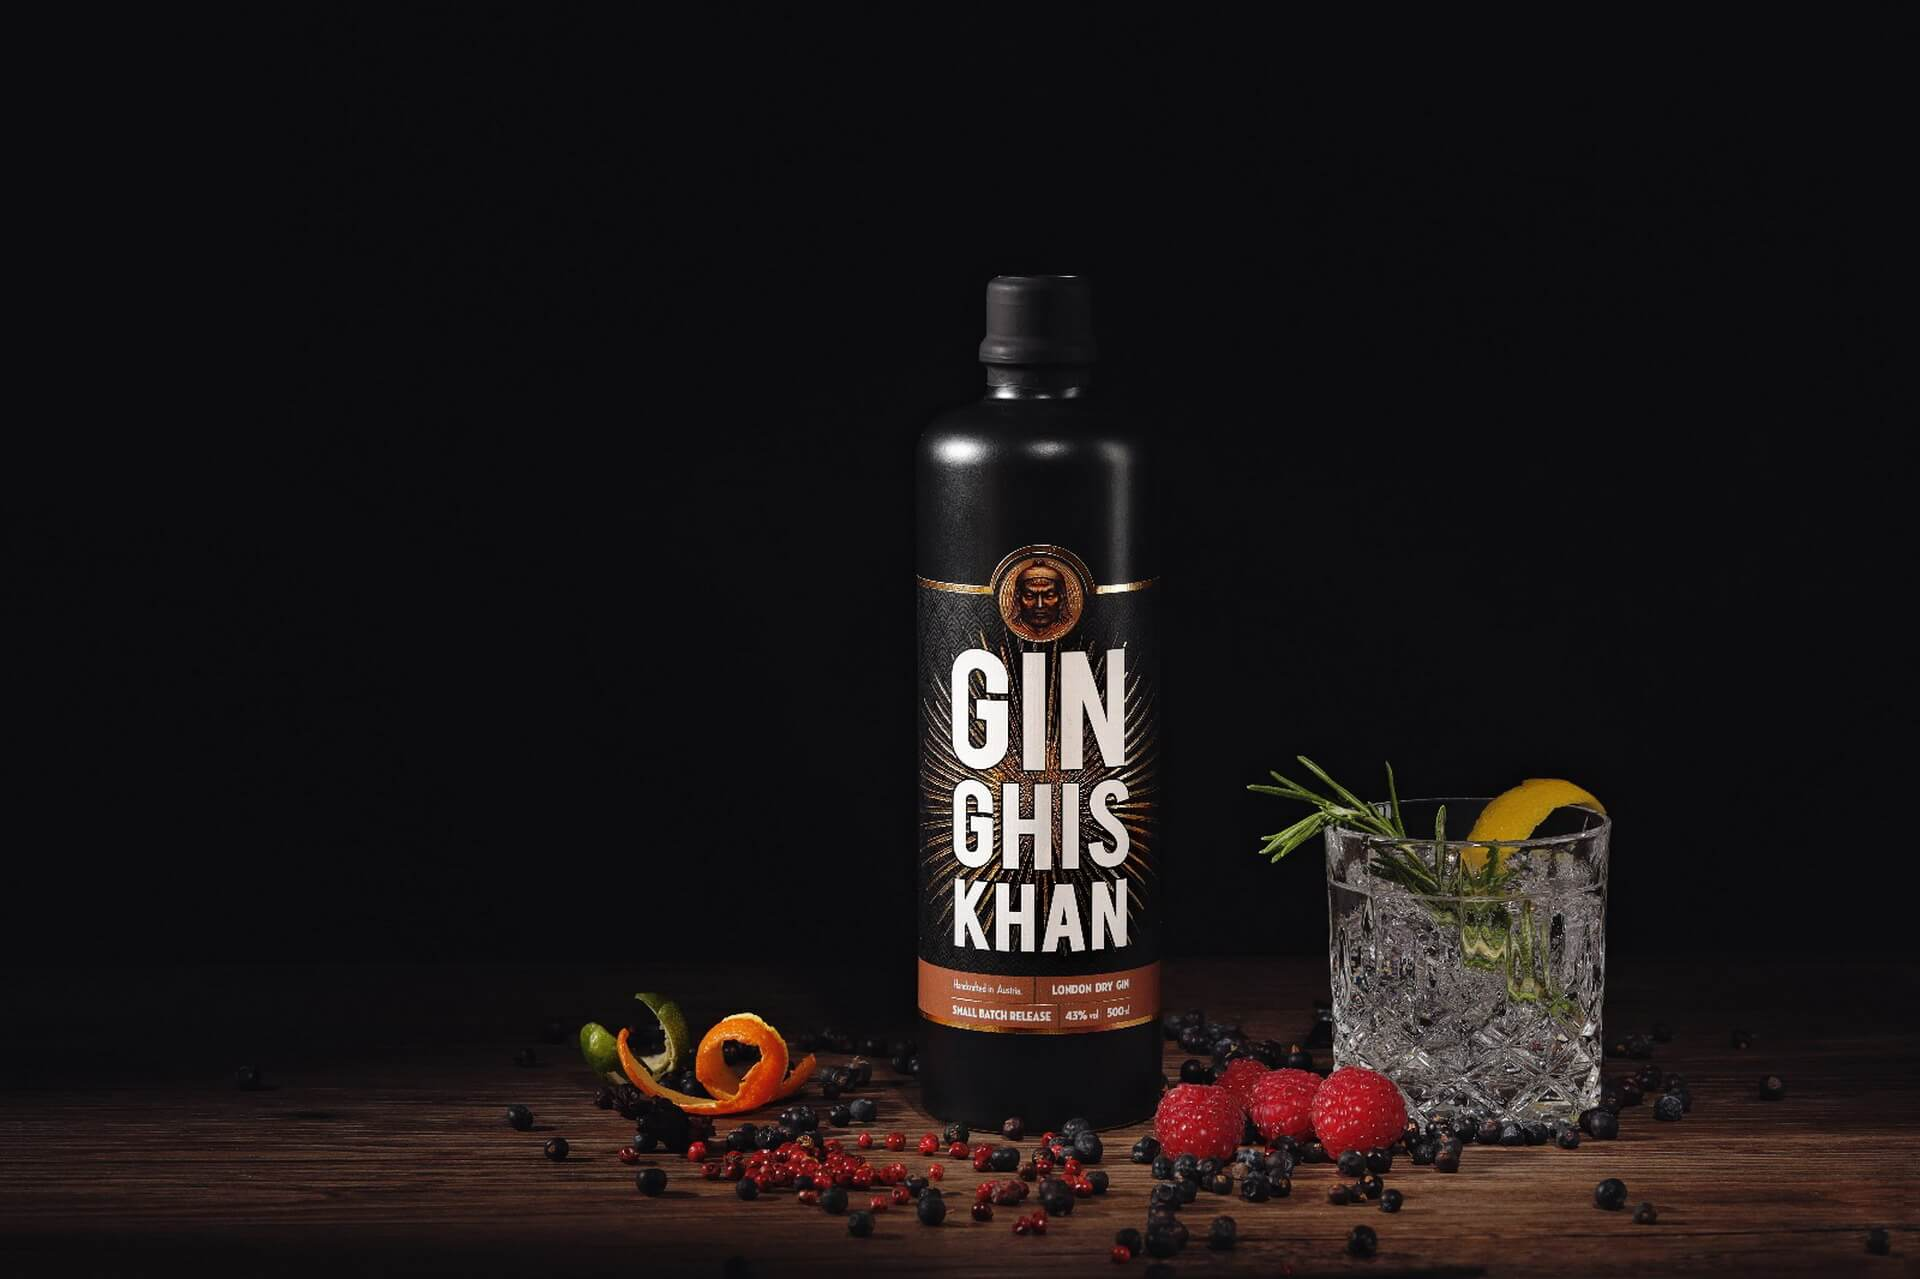 GIN GHIS KHAN One Bottle With Gin Tonic